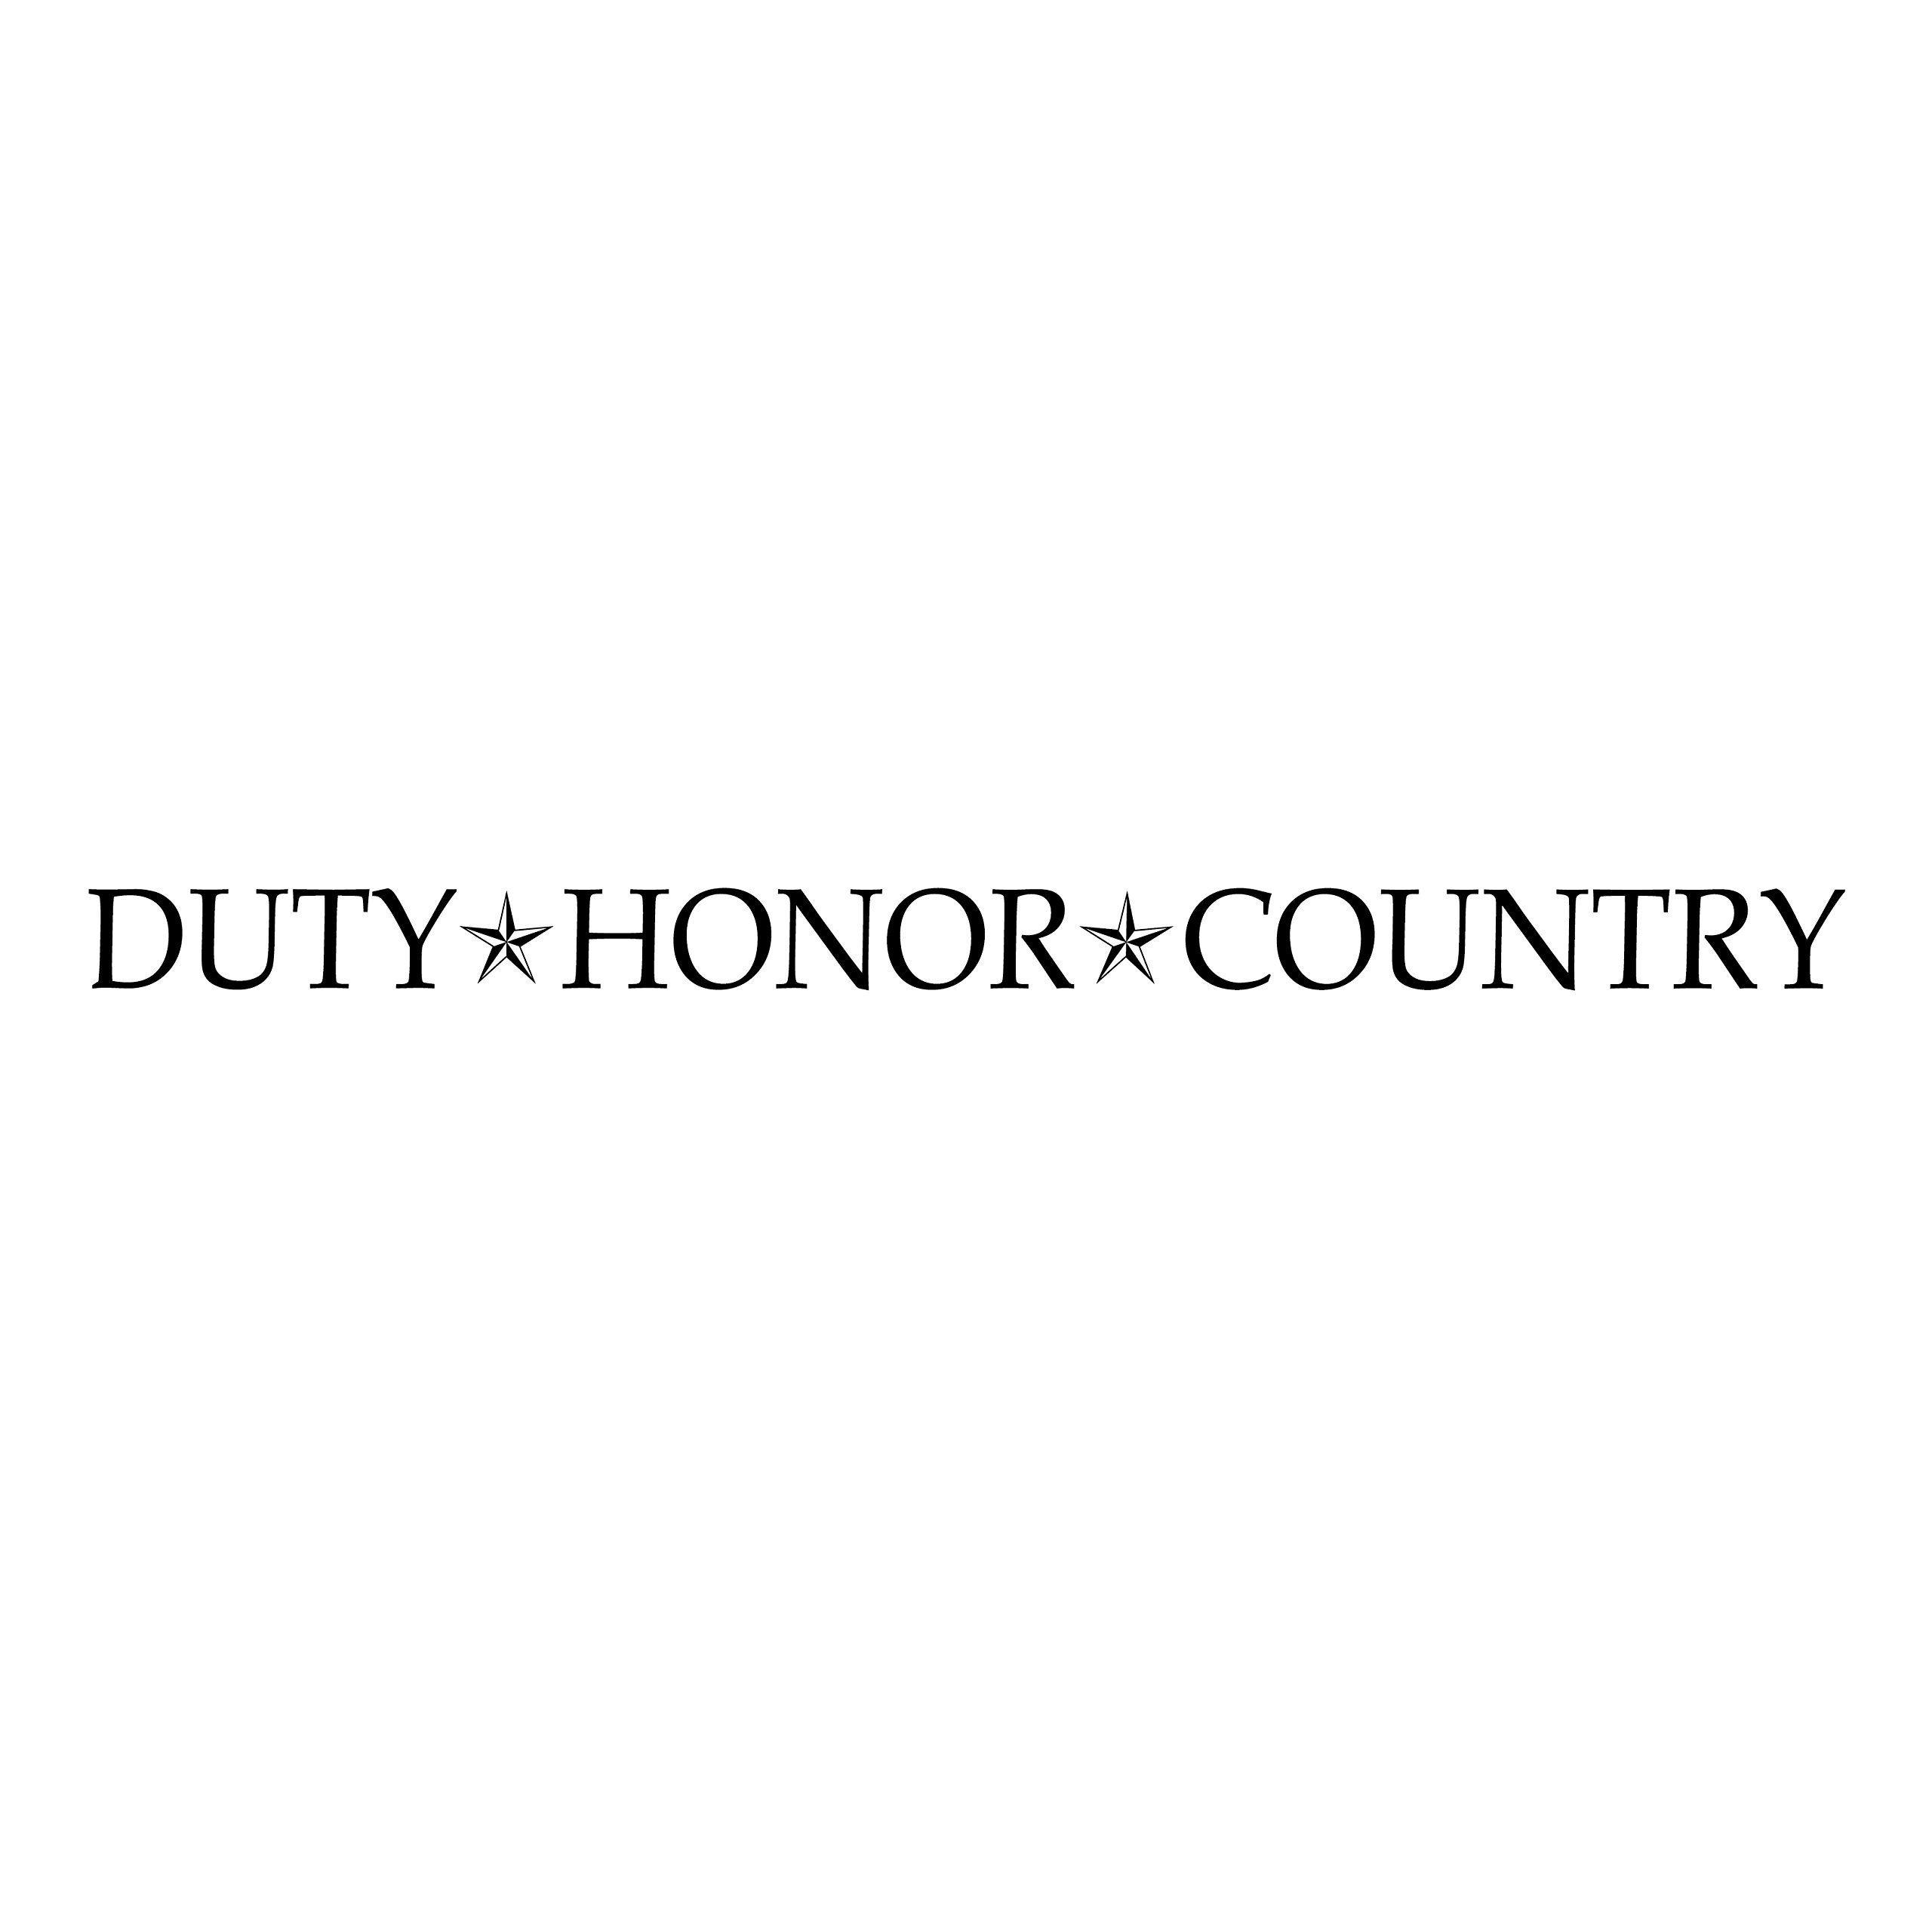 Duty Honor Country Vinyl Wall Decal by Wild Eyes Signs, military wall decal, stars, army, Patriotic wall decal, living room, master bedroom, sticker, military quote HH2160 by WildEyesSigns